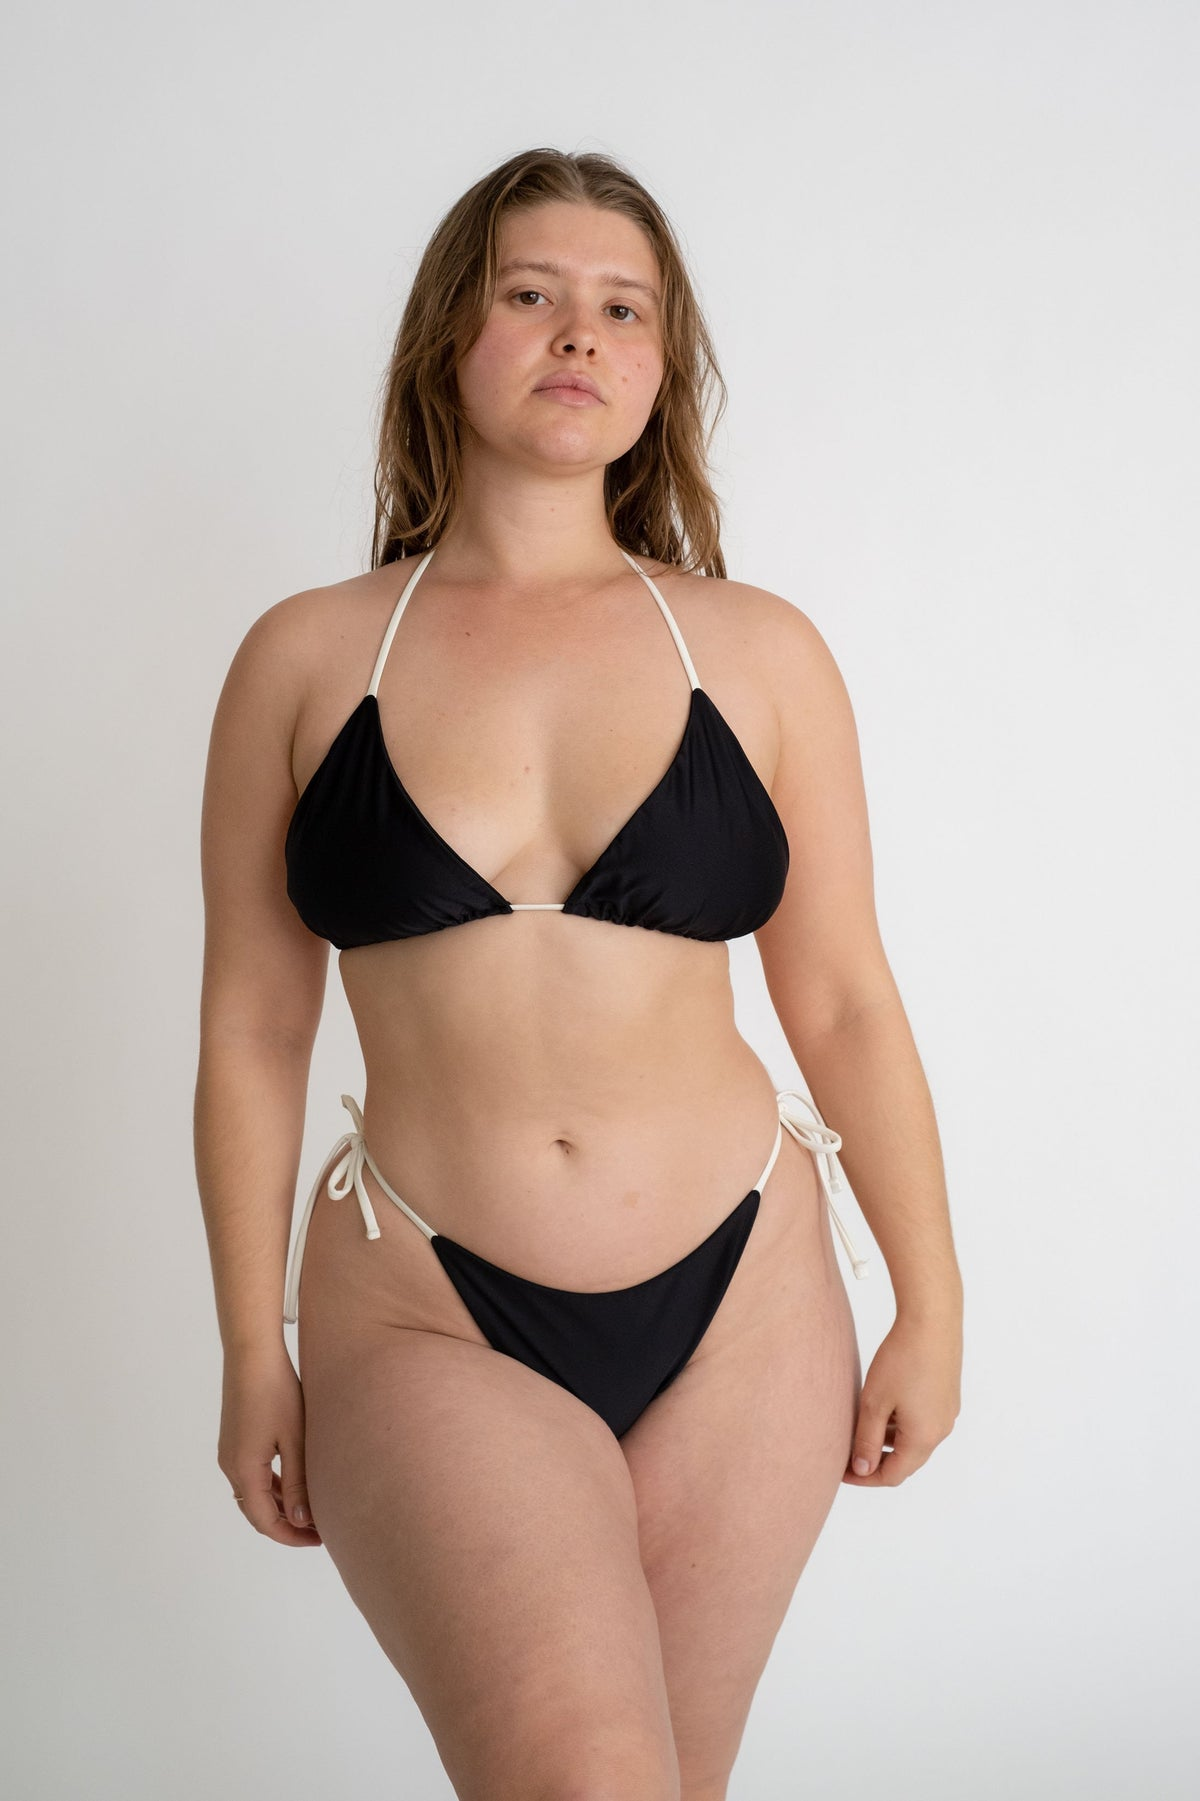 A woman standing with her arms relaxed by her sides wearing a black triangle bikini top with adjustable white straps and black triangle bikini bottoms with white strings.